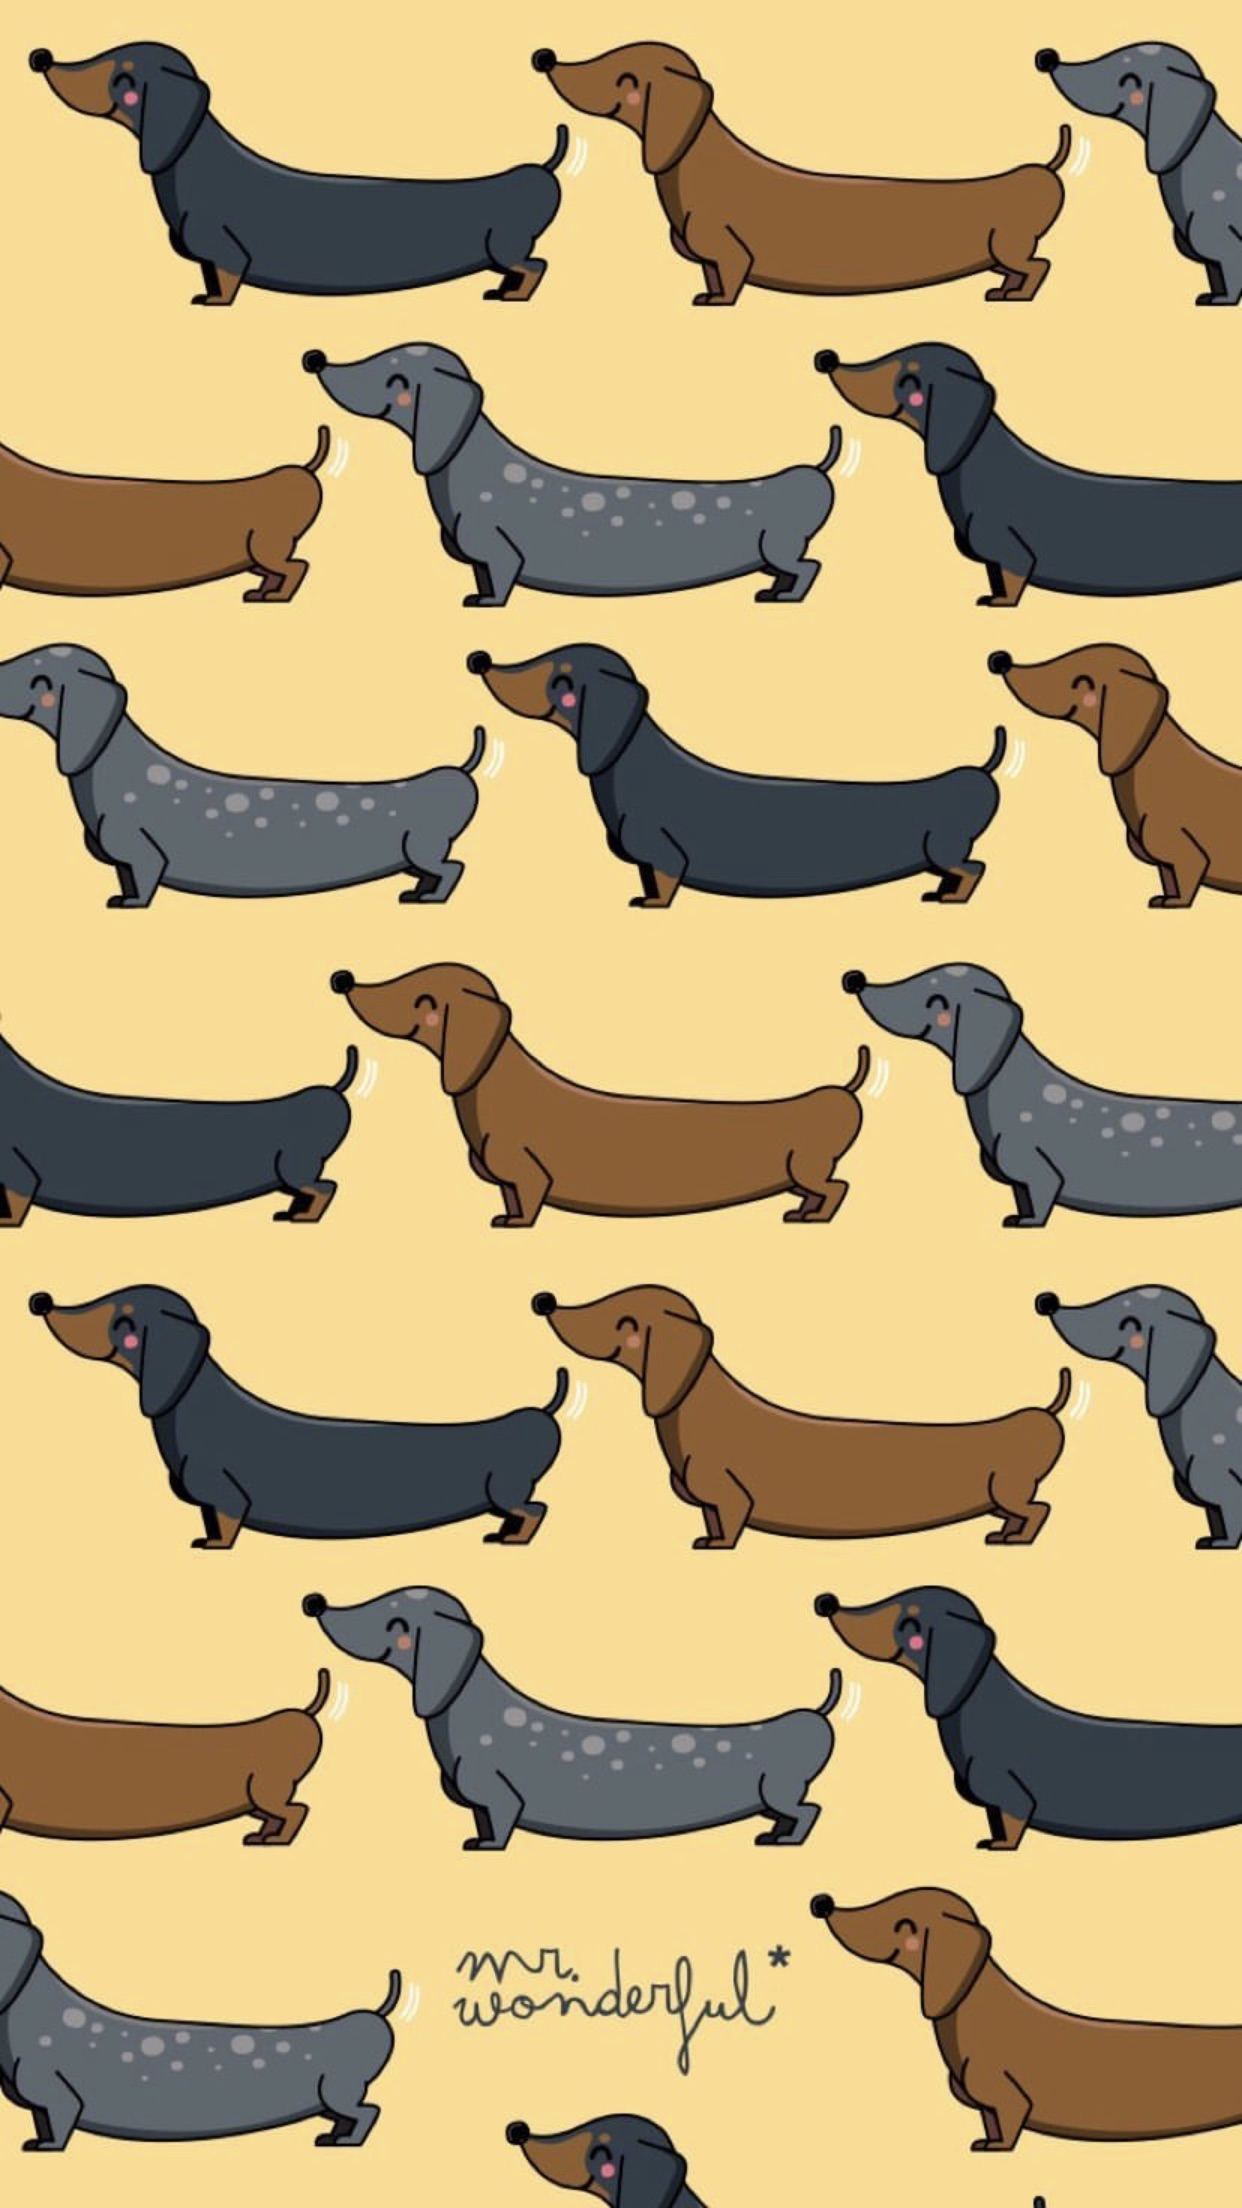 fondos de pantalla, fondo de pantalla, fondo de pantalla divertido, fondo de pantalla femenino, girly backgrounds, cool background, colorful backfround, fondo de pantalla patron, pattern, dog background, fondo de pantalla de perros.